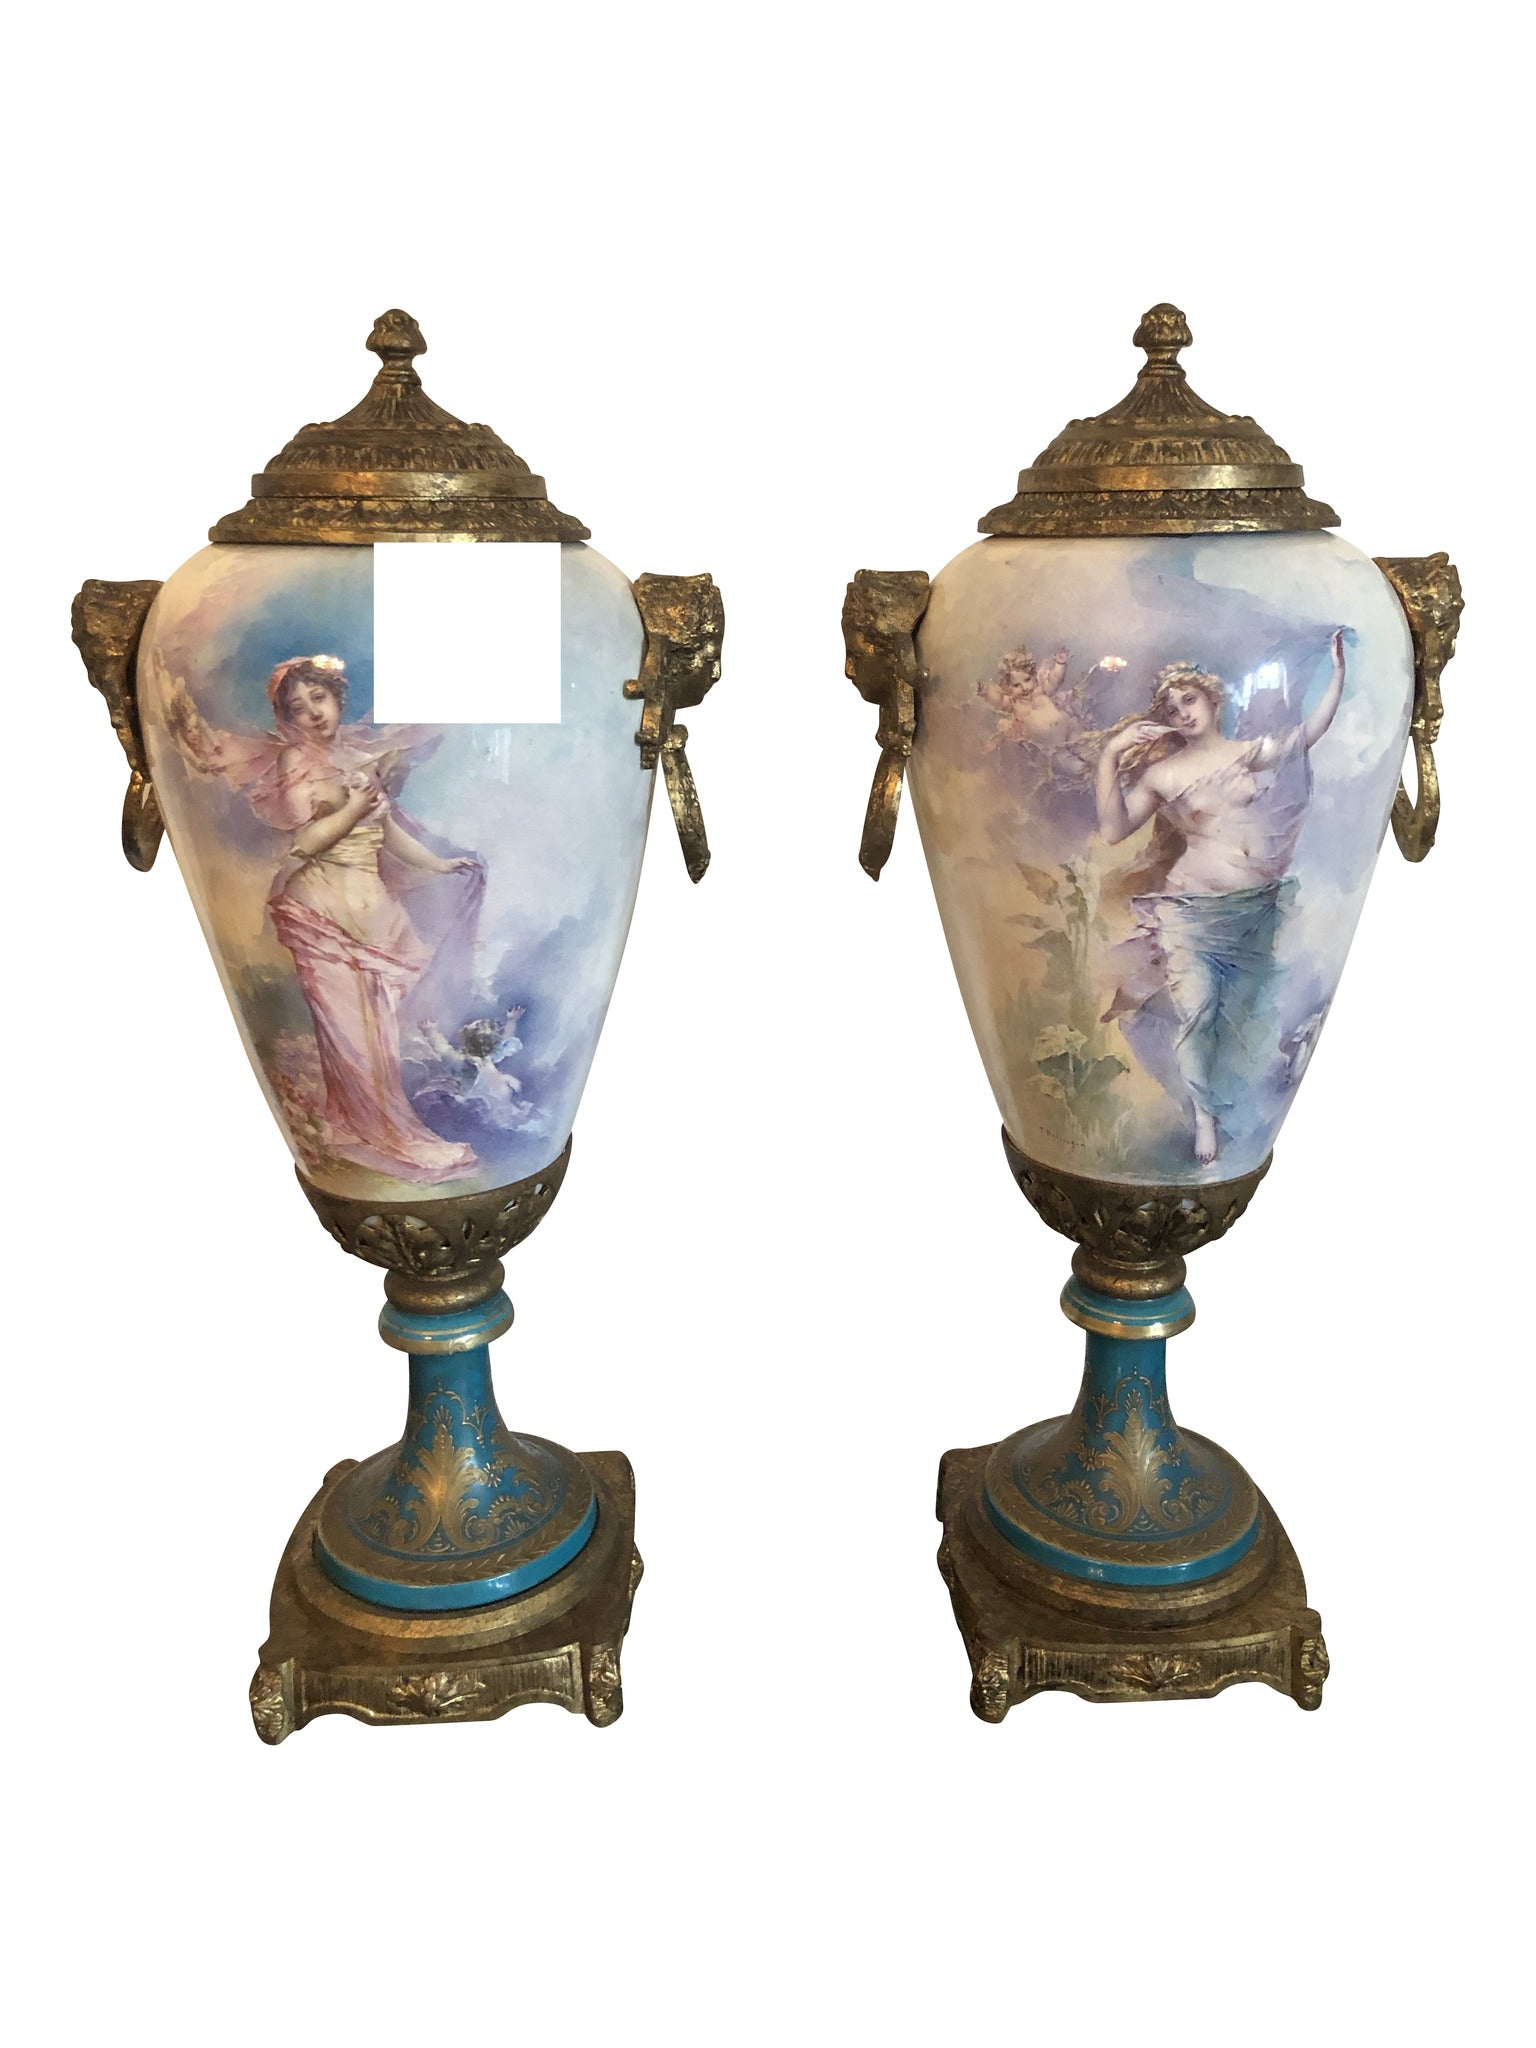 Pair of French Urns, 20th Century, Signed by T Ballanger